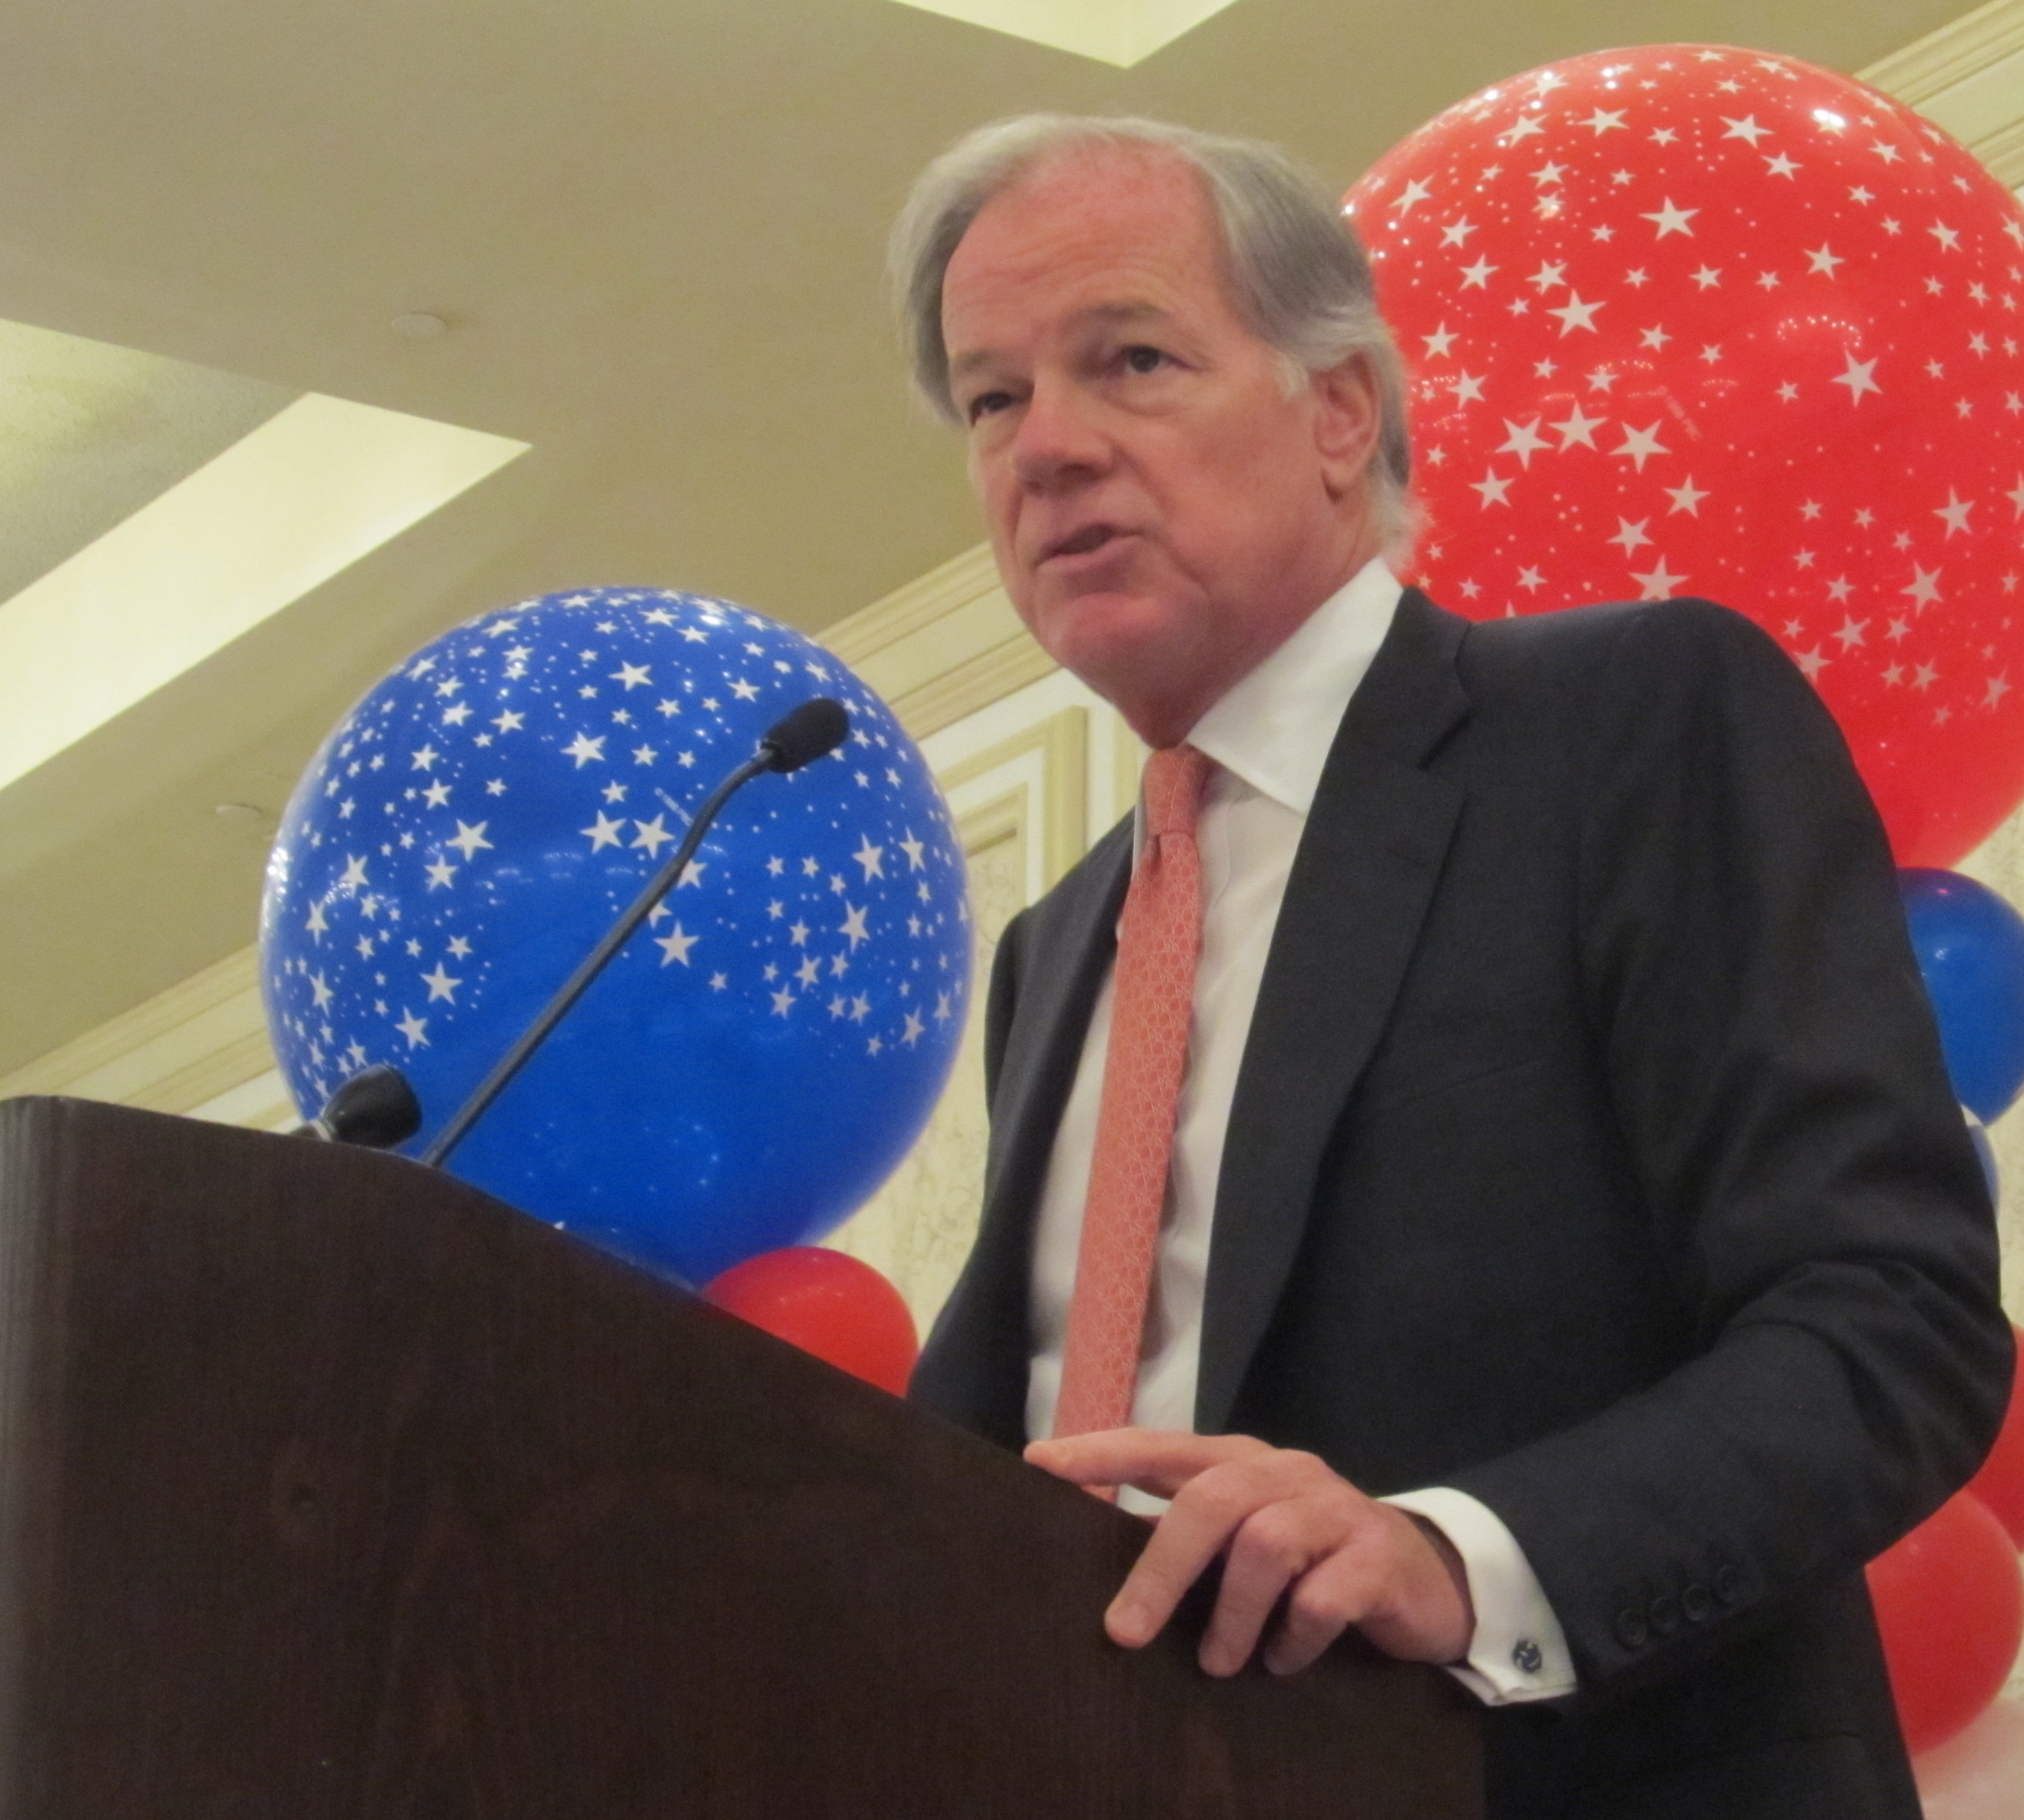 Not quite the nominee, Tom Foley puts stamp on GOP